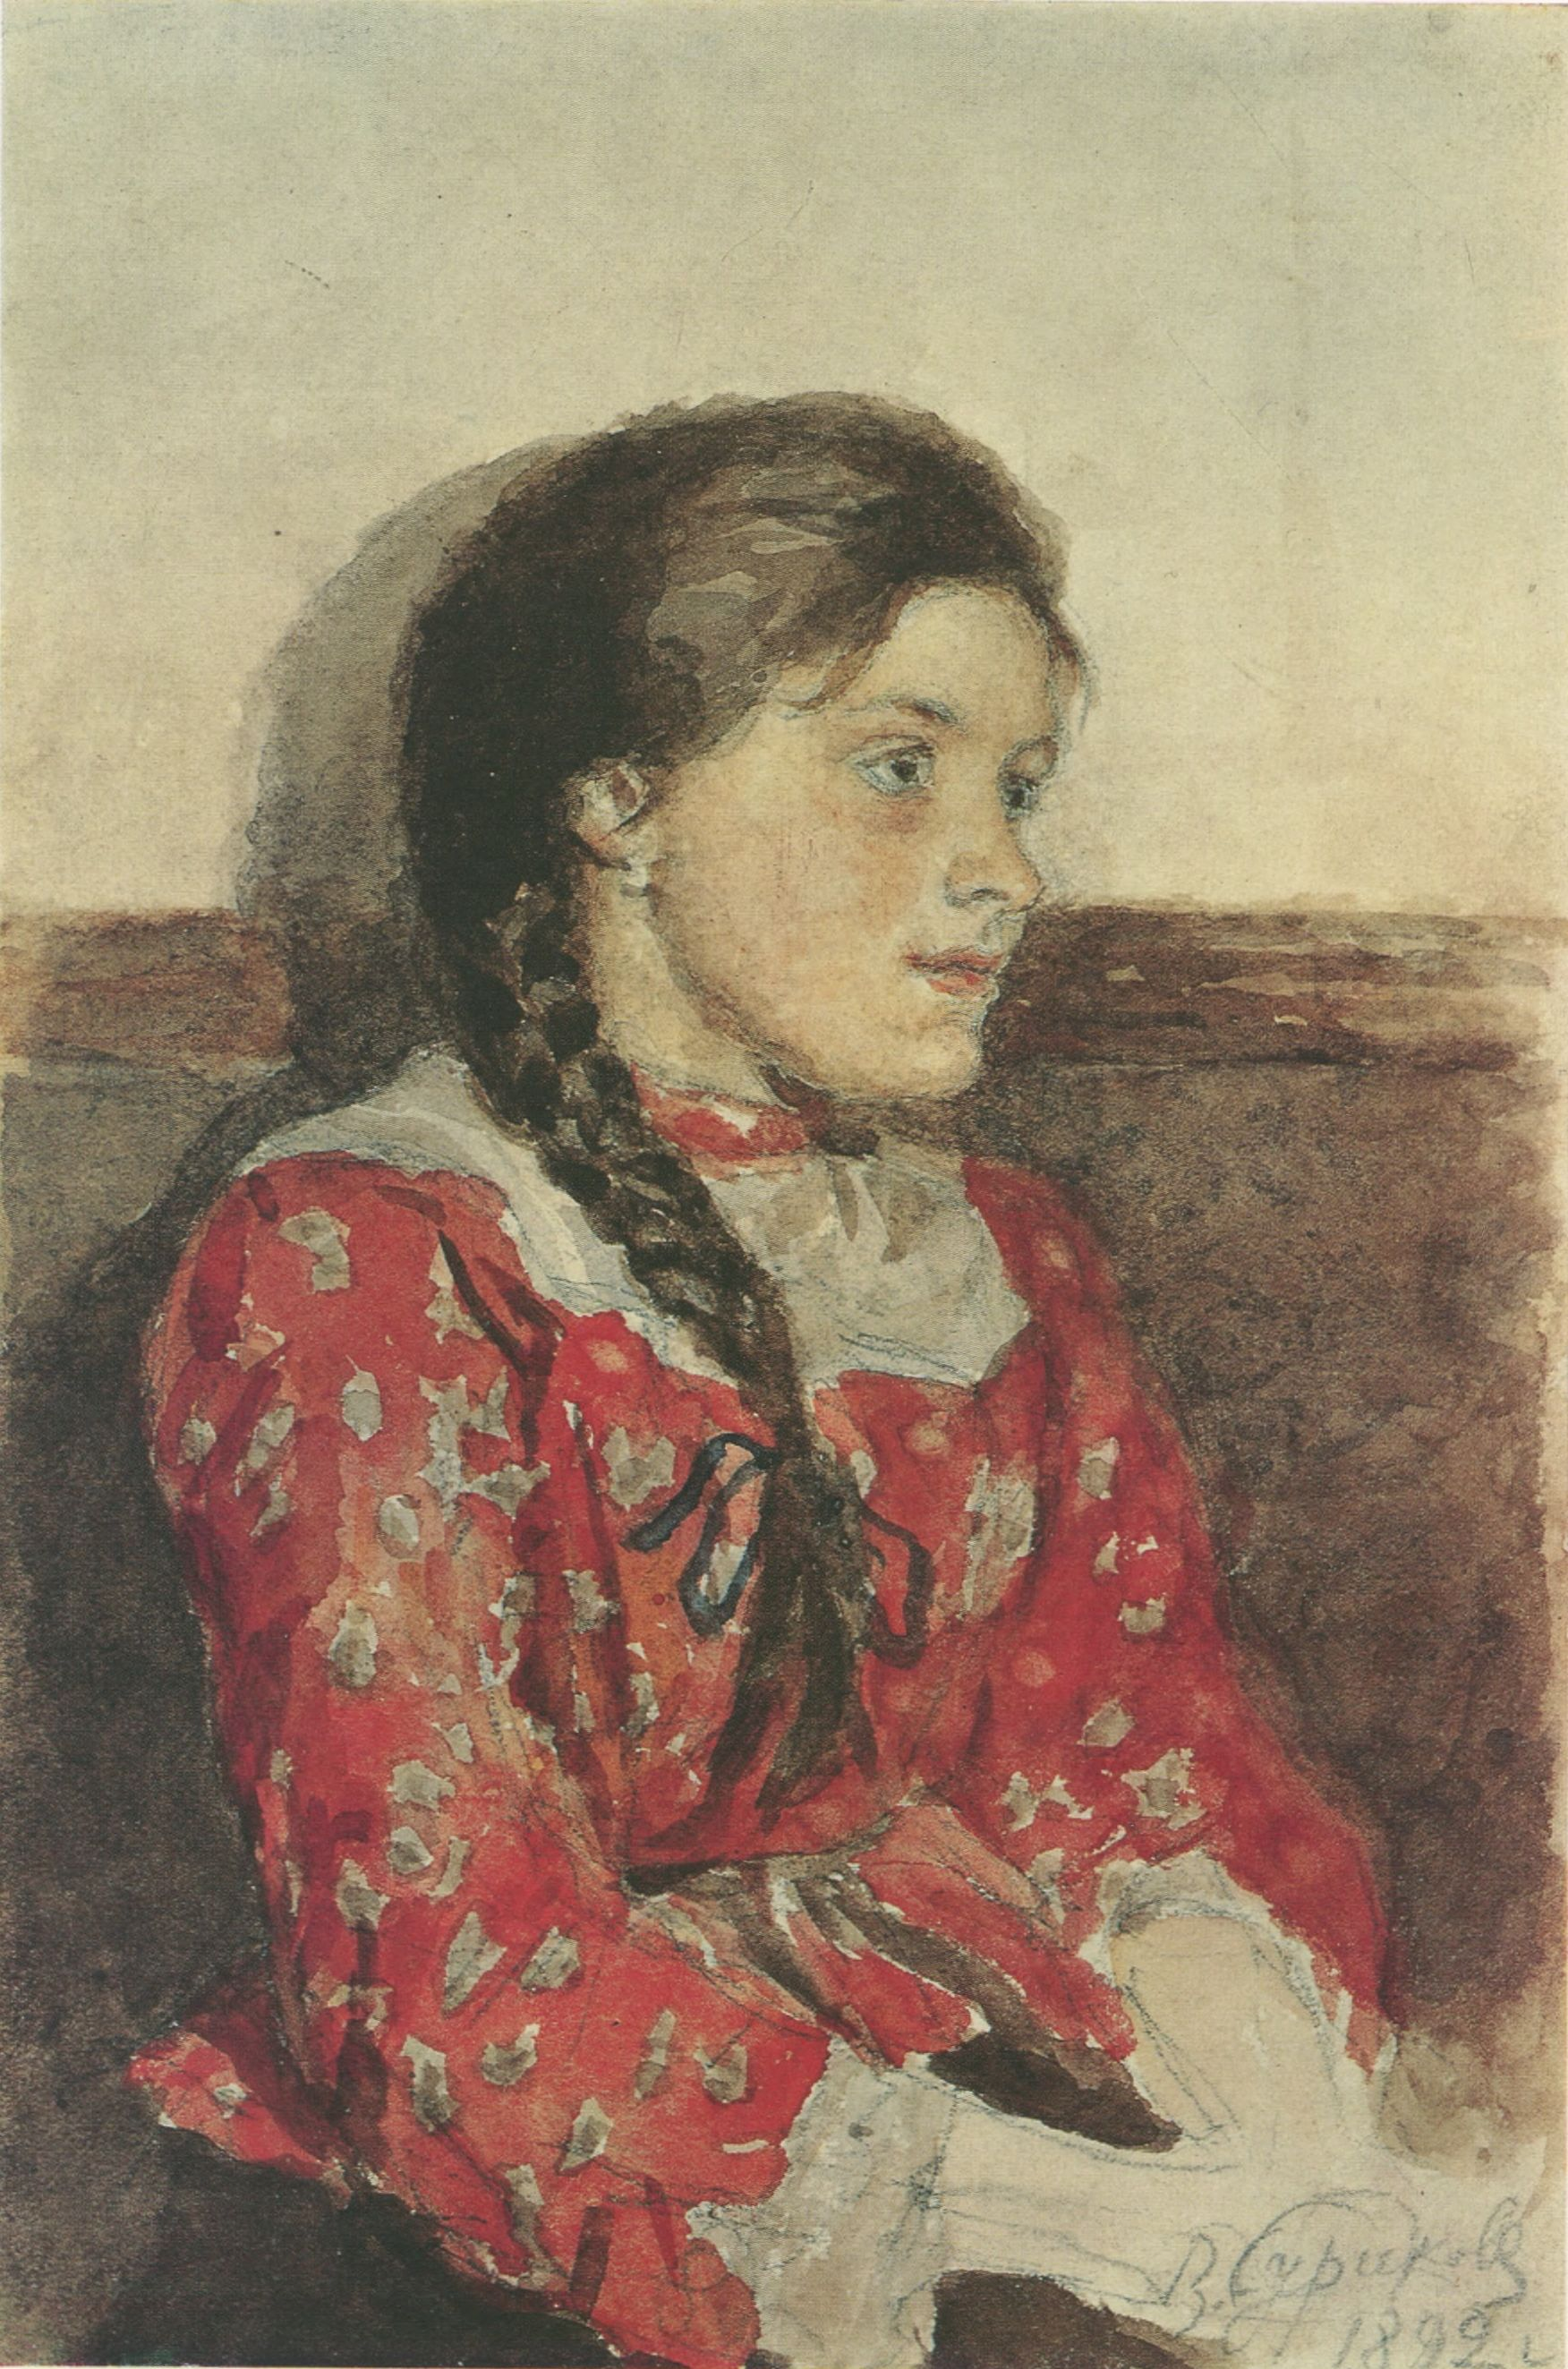 50. Девушка в красной кофте. 1892 (Young Girl in a Red Shirt. 1892)